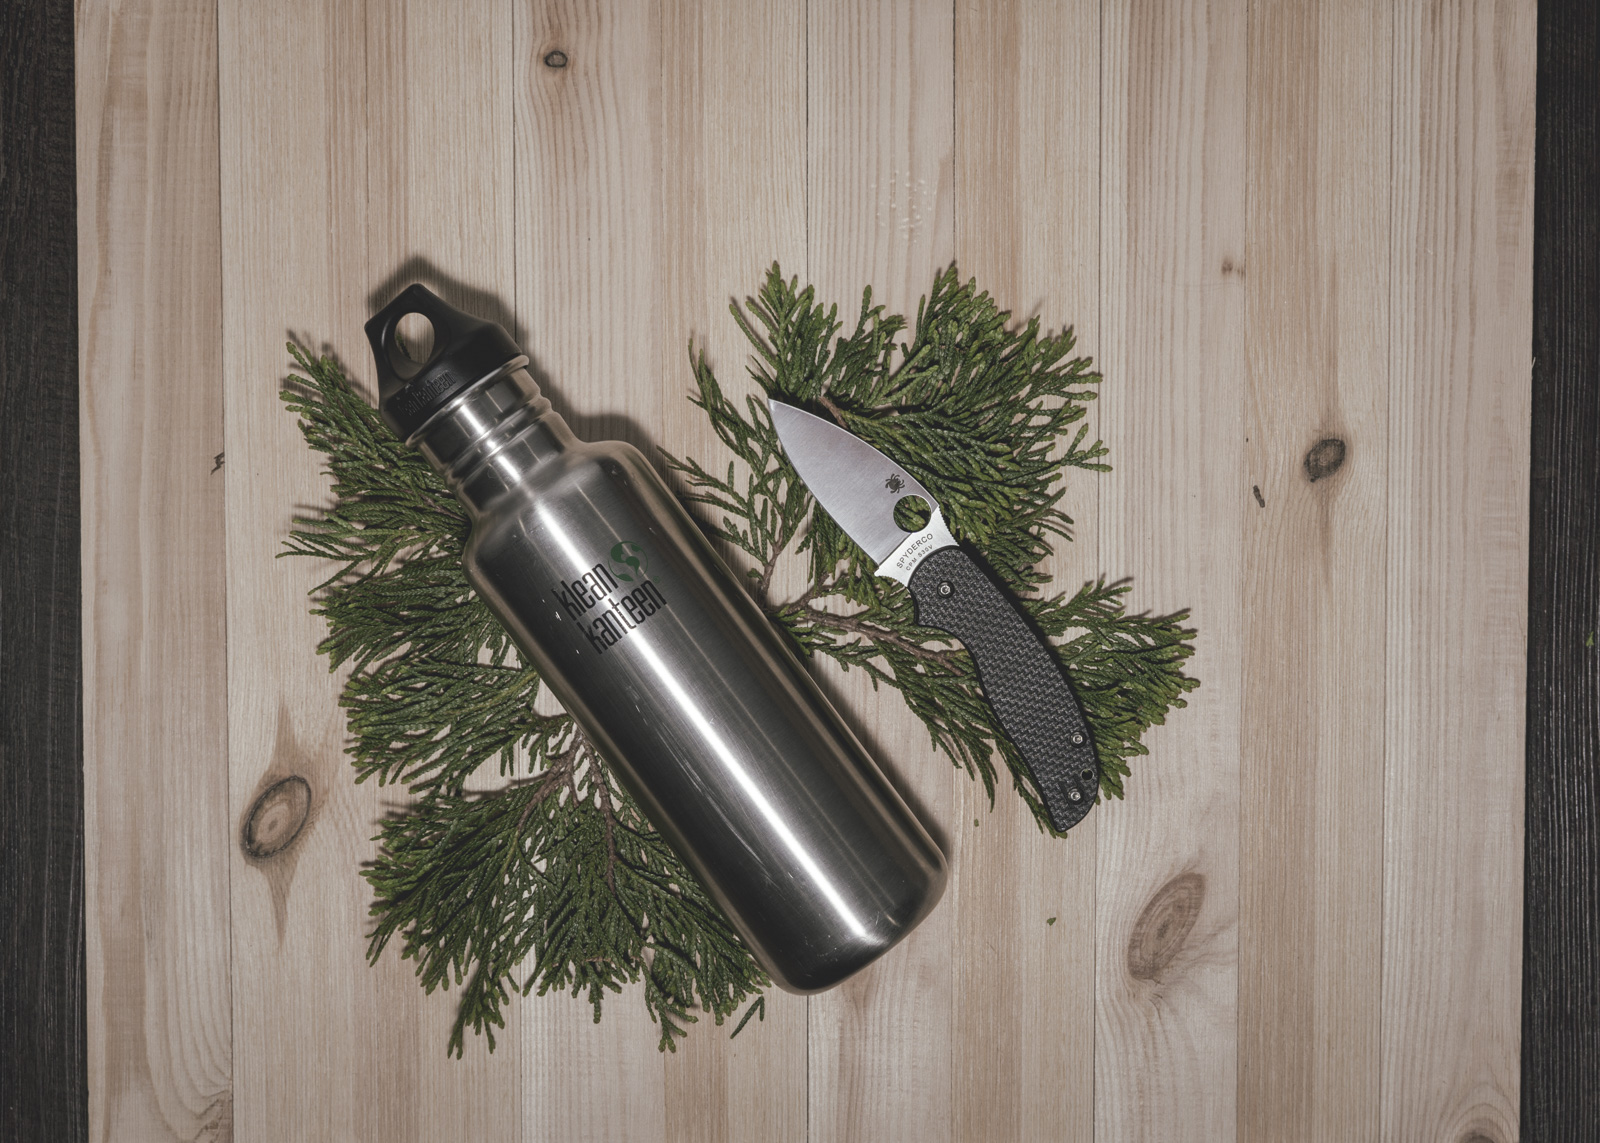 Klean Kanteen and Spyderco